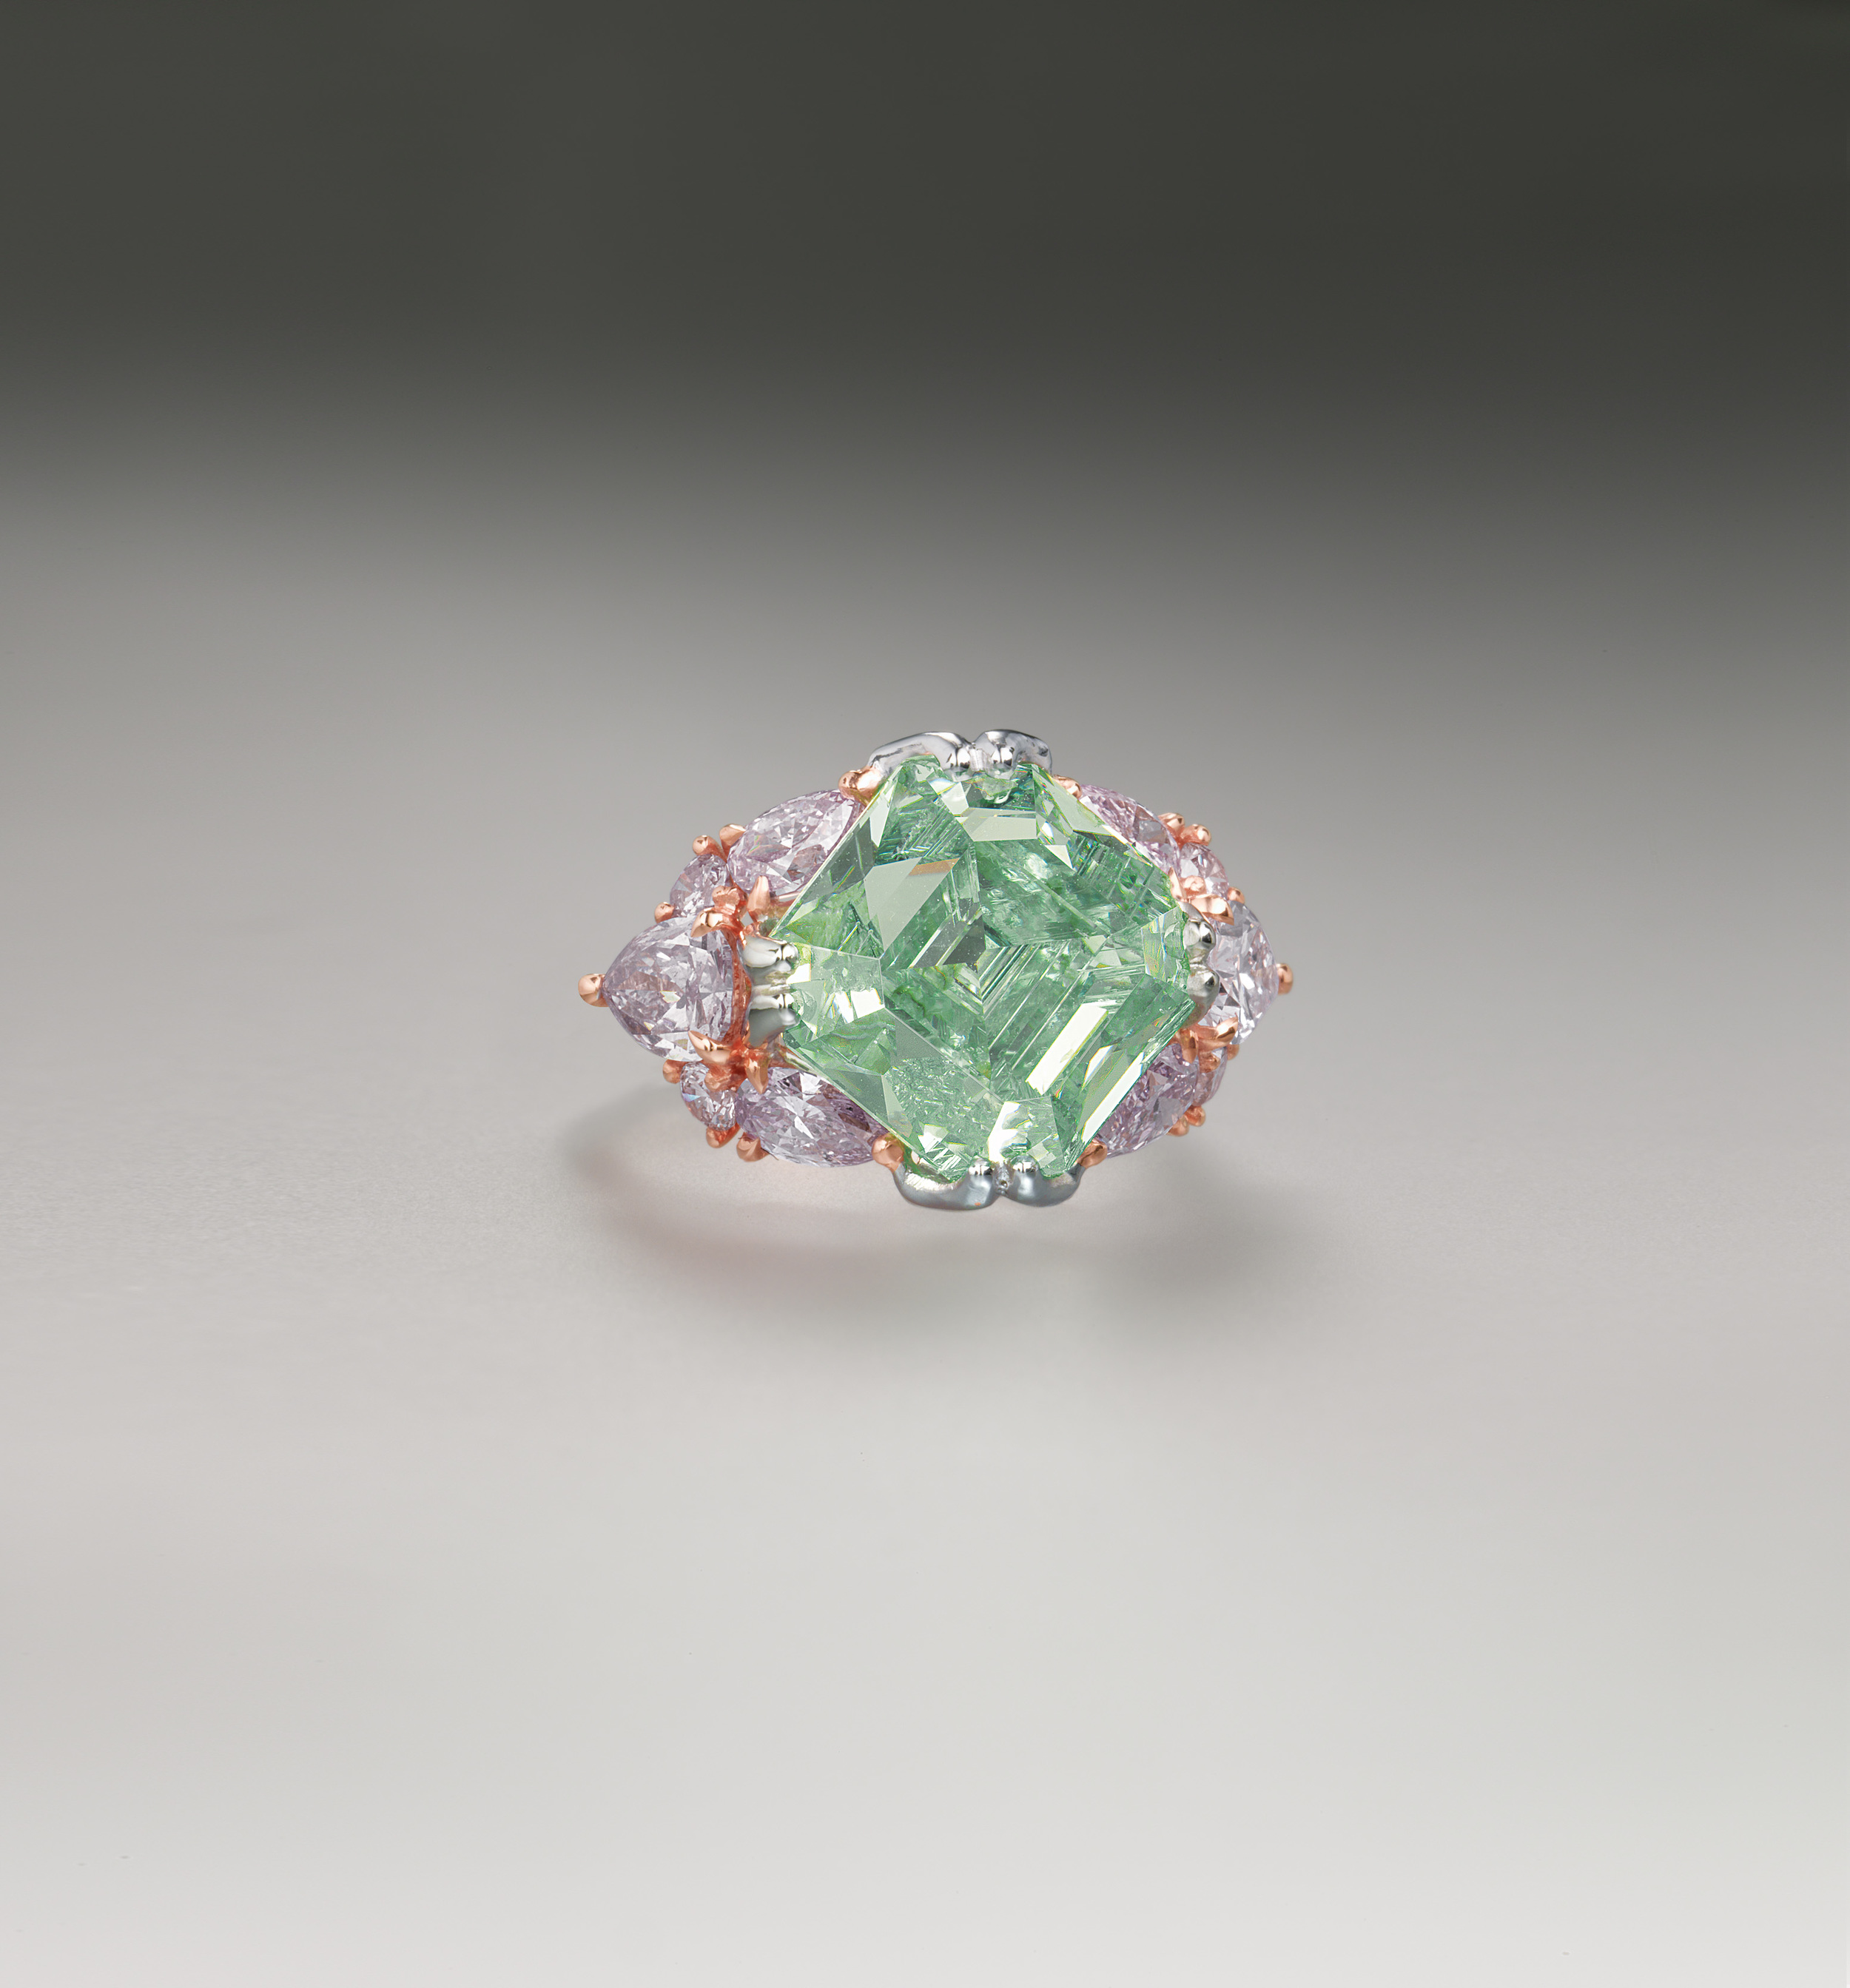 A square-shaped fancy green diamond weighing 10.36 carats, set in a ring within a pear-shaped and round cut pink diamond surround. Image: Christie's Hong Kong, 2008.